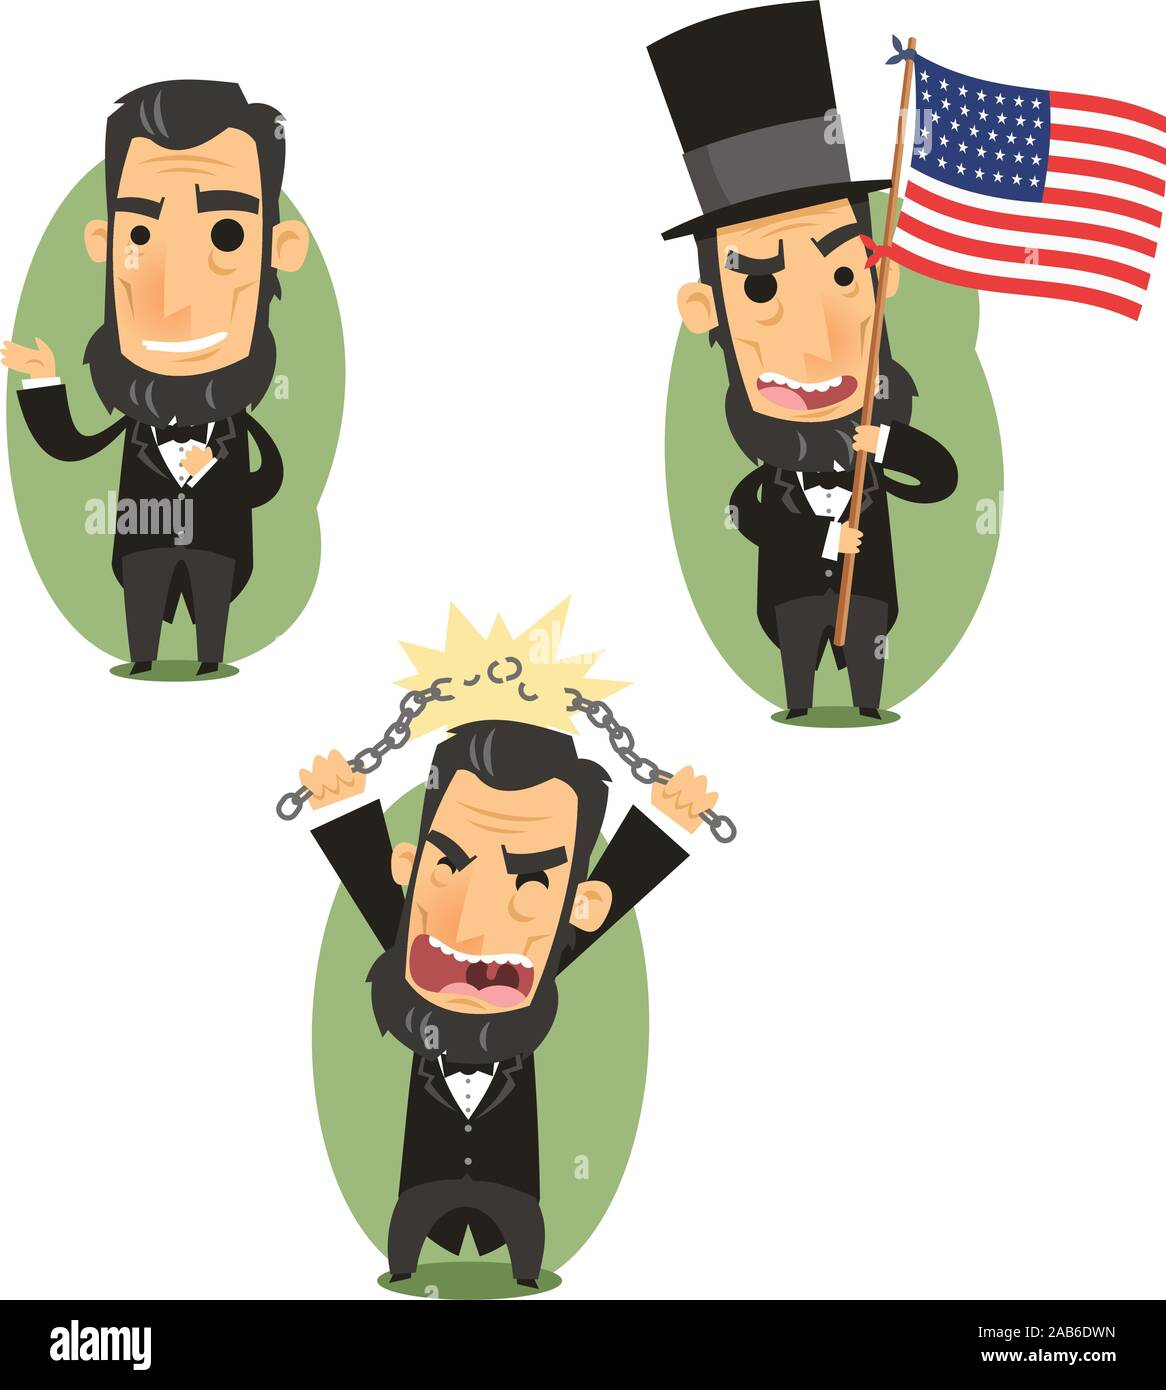 Abraham Lincoln Government Abolitionist Freedom President of the united states of america, vector illustration cartoon. Stock Vector